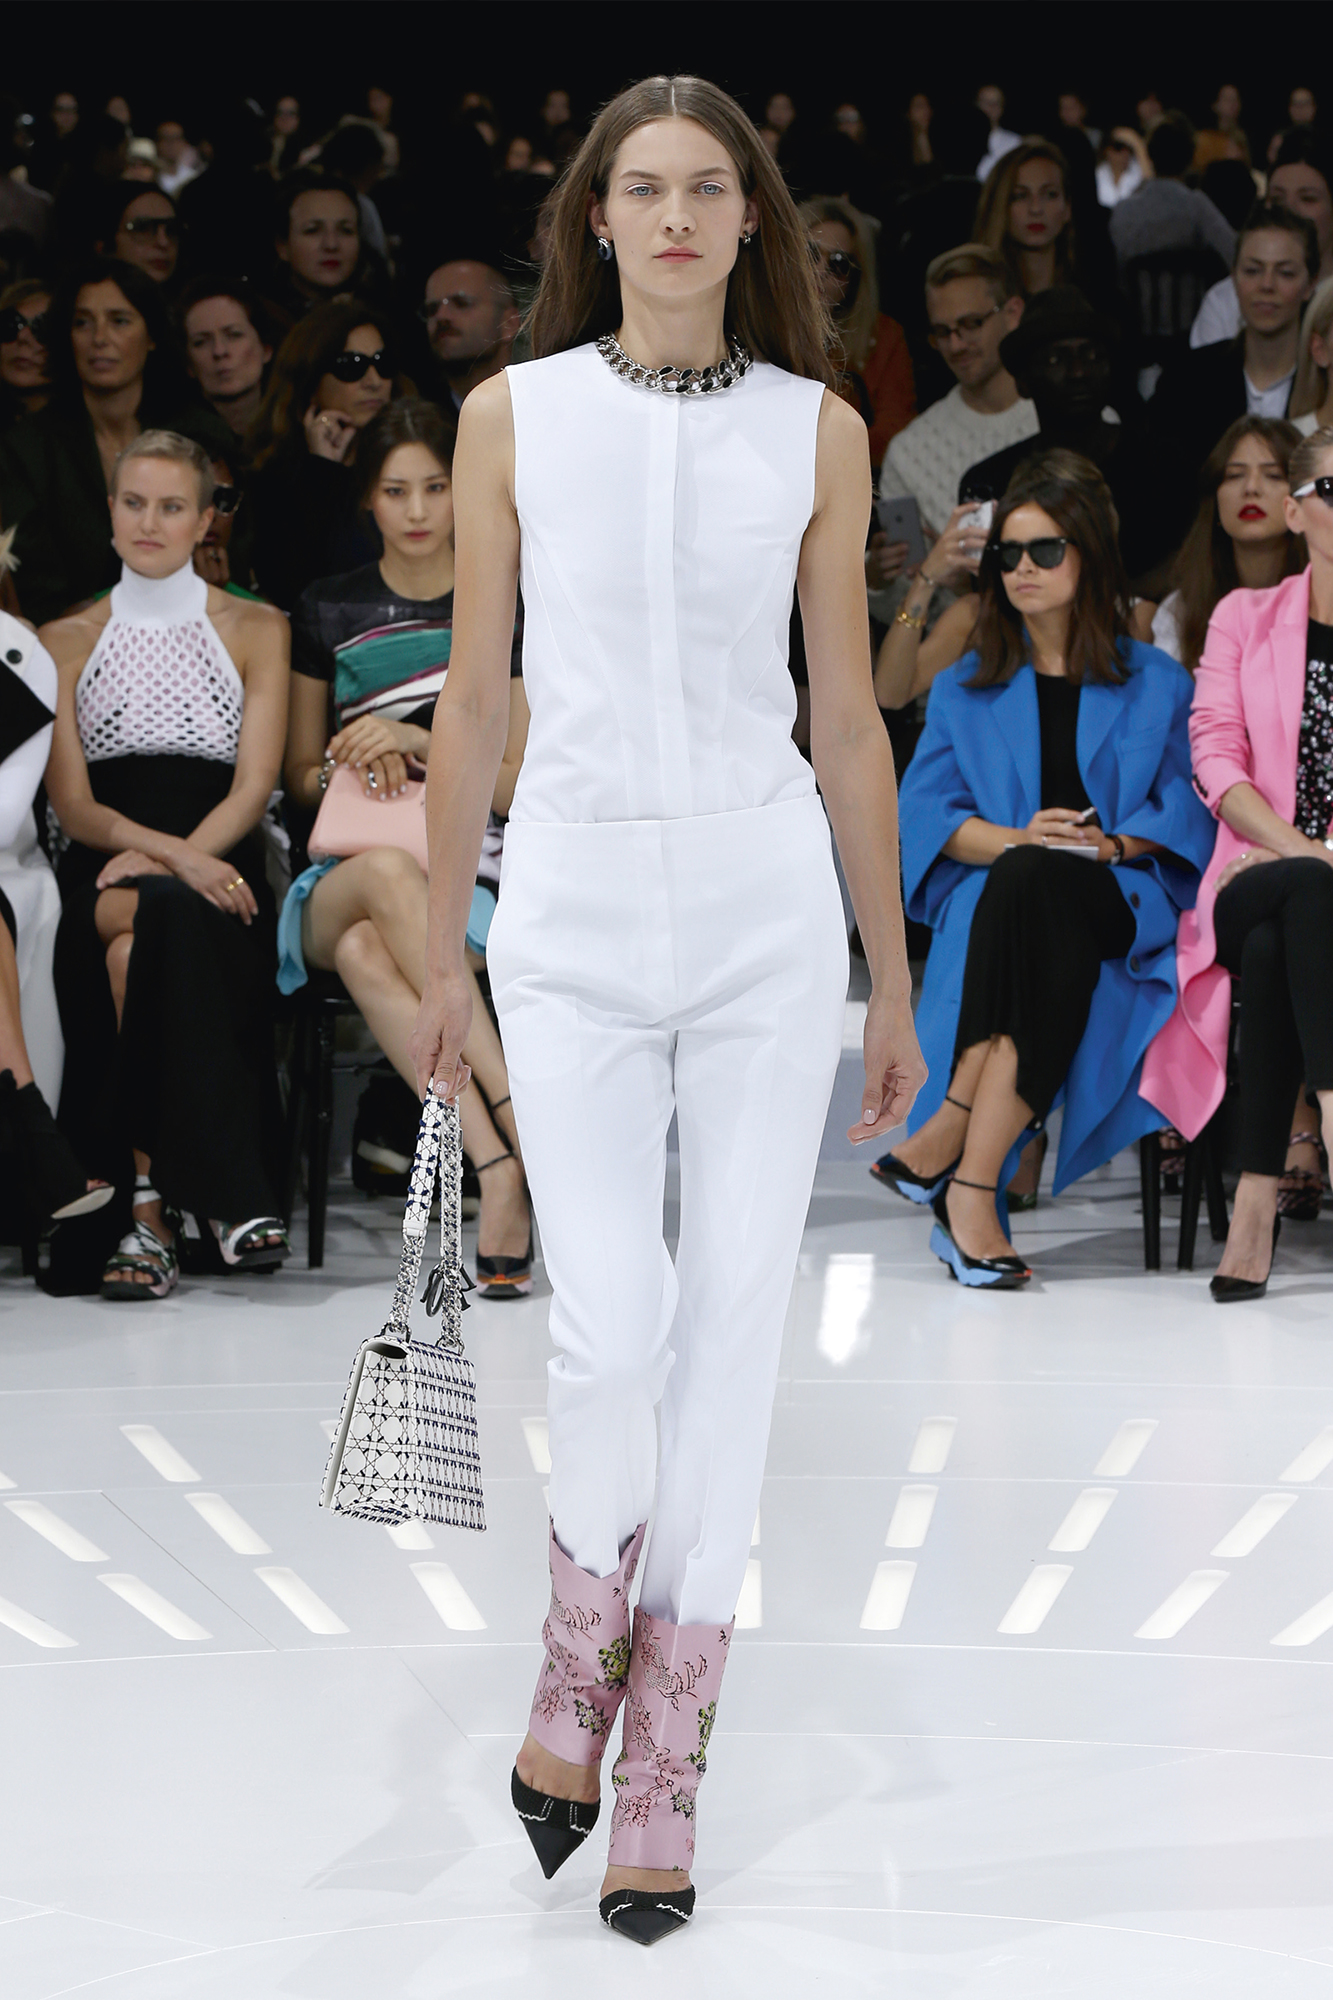 Christian Dior Haute Couture Spring-Summer Ready To Wear Dresses & Accessories Collection 2015-16 (4)